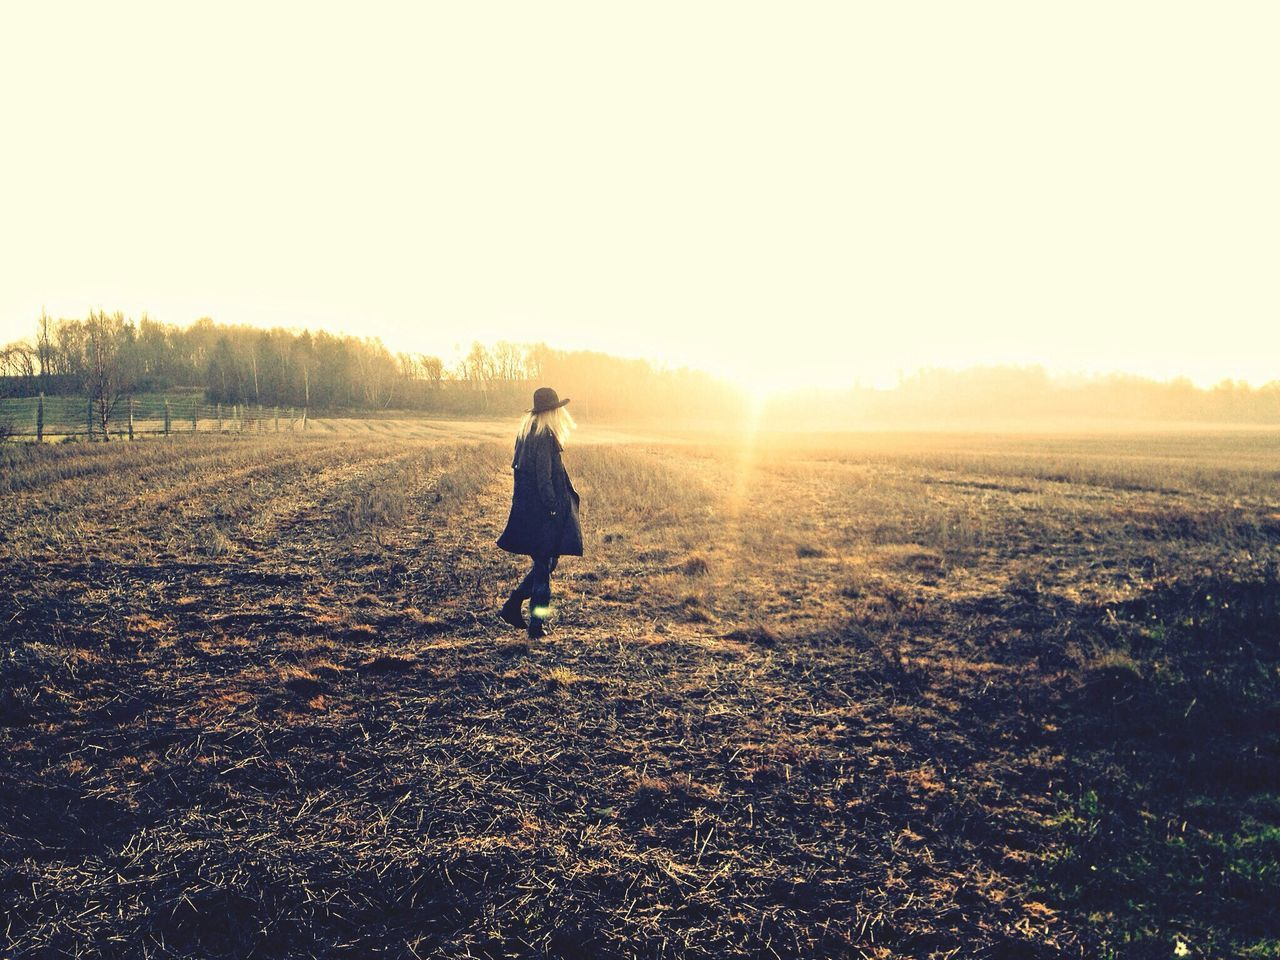 Woman walking on field during sunset